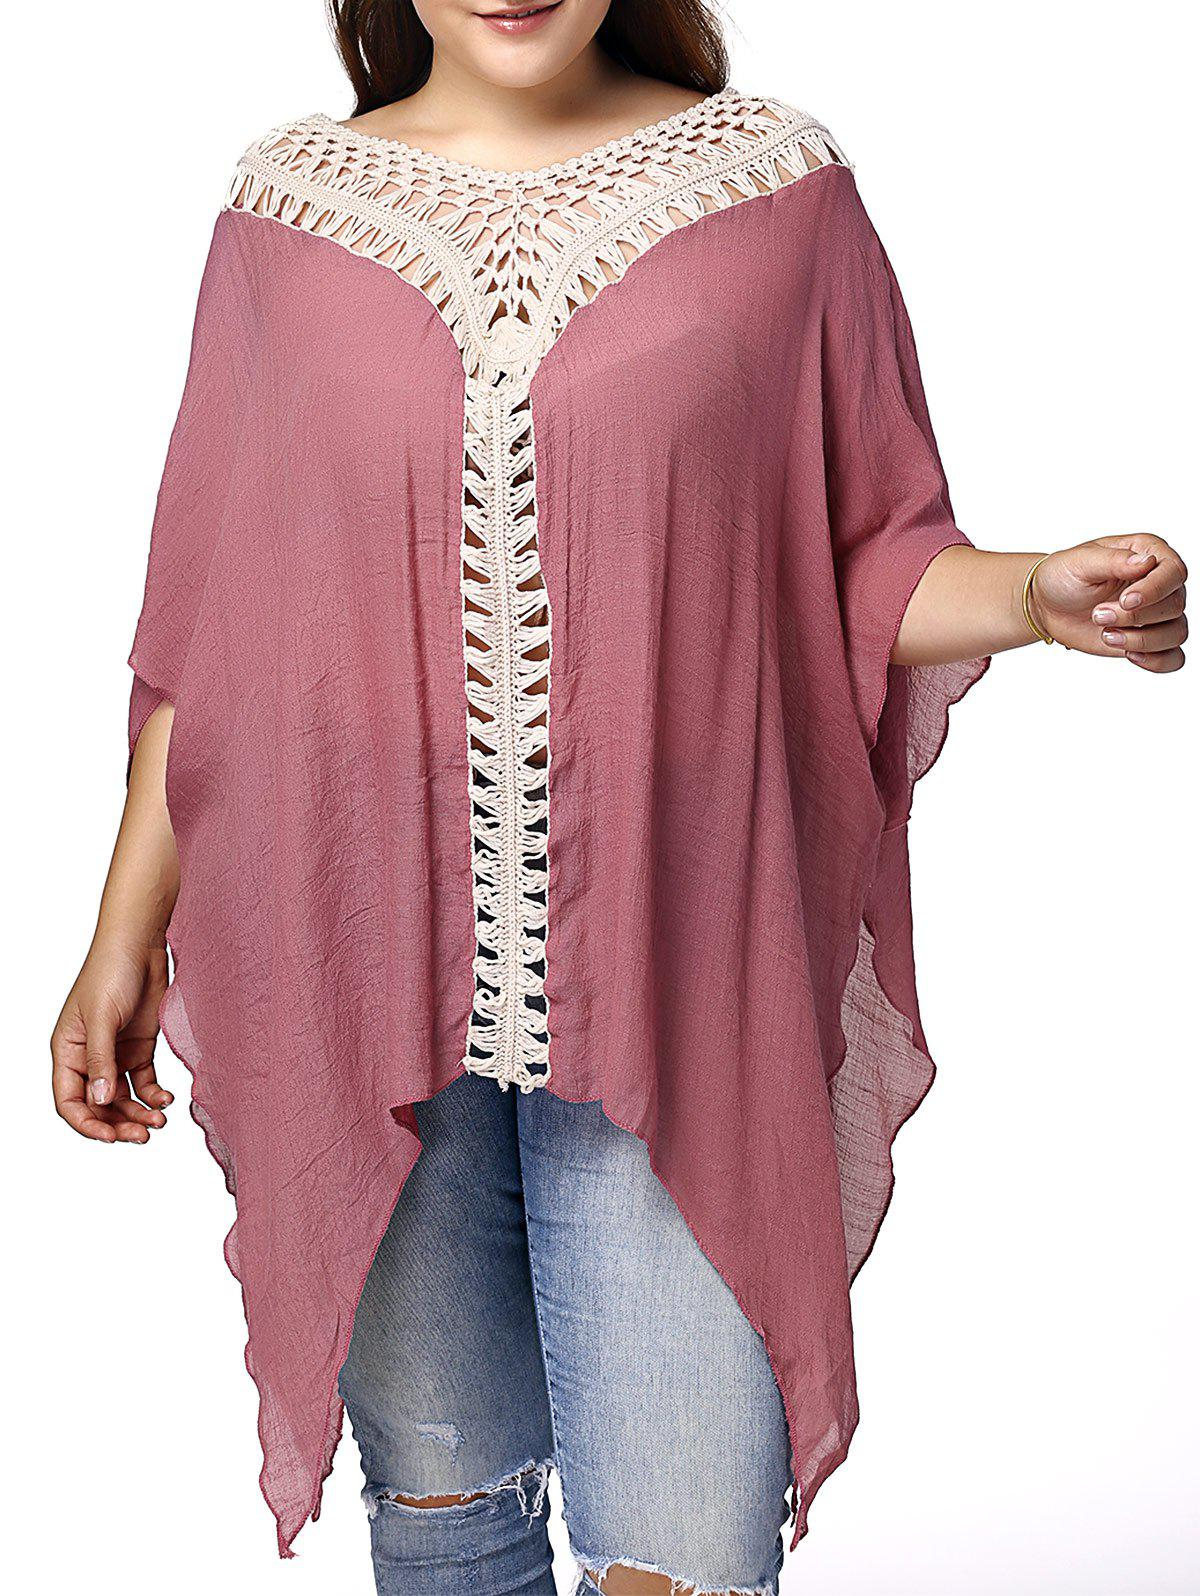 Stylish V Neck 3/4 Sleeve Asymmetrical Hollow Out Plus Size Women's Maternity Blouse - PINK XL